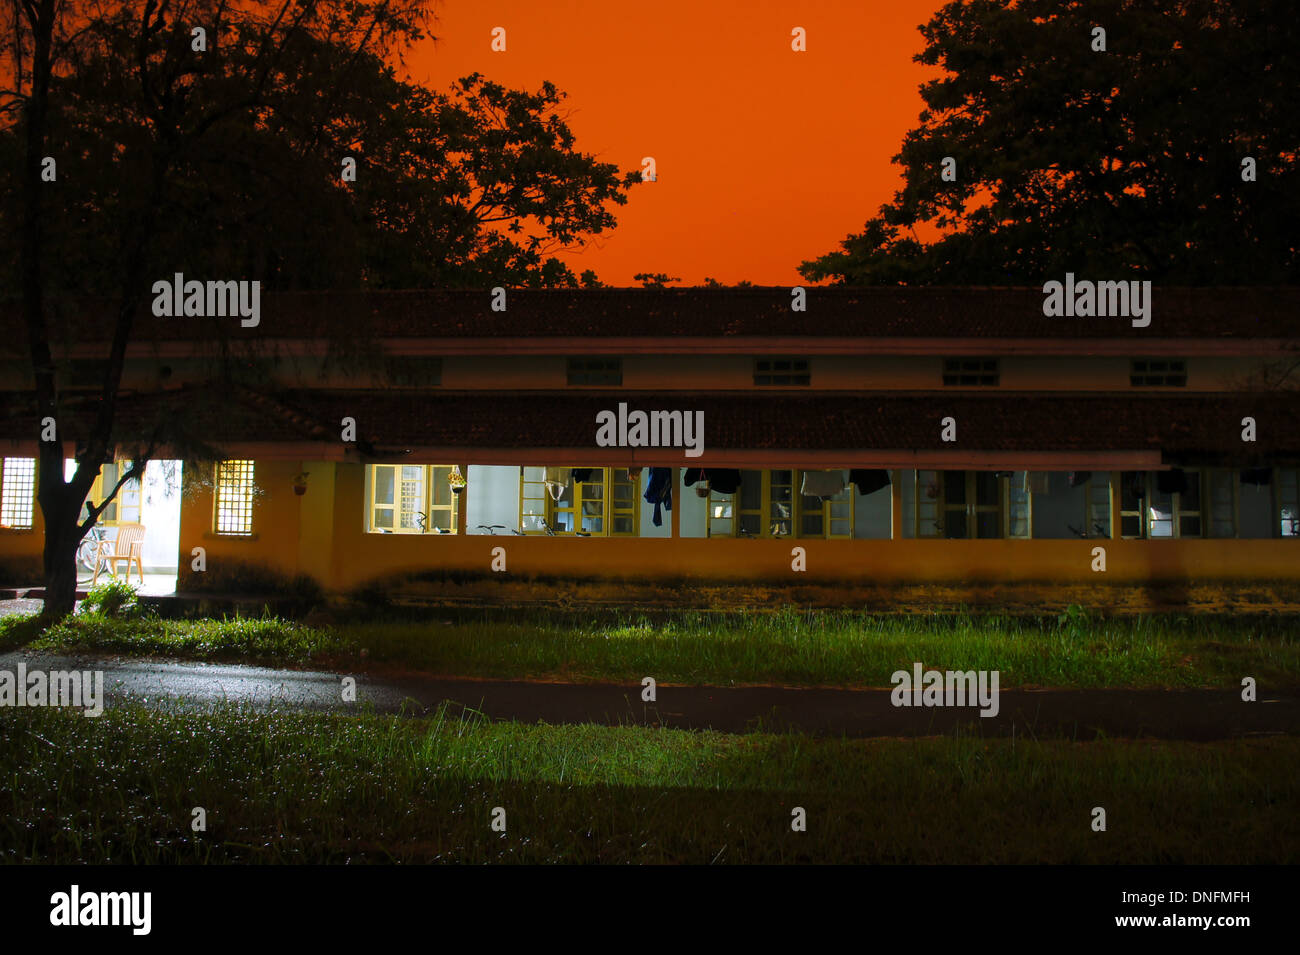 Home lit up at night, India - Stock Image